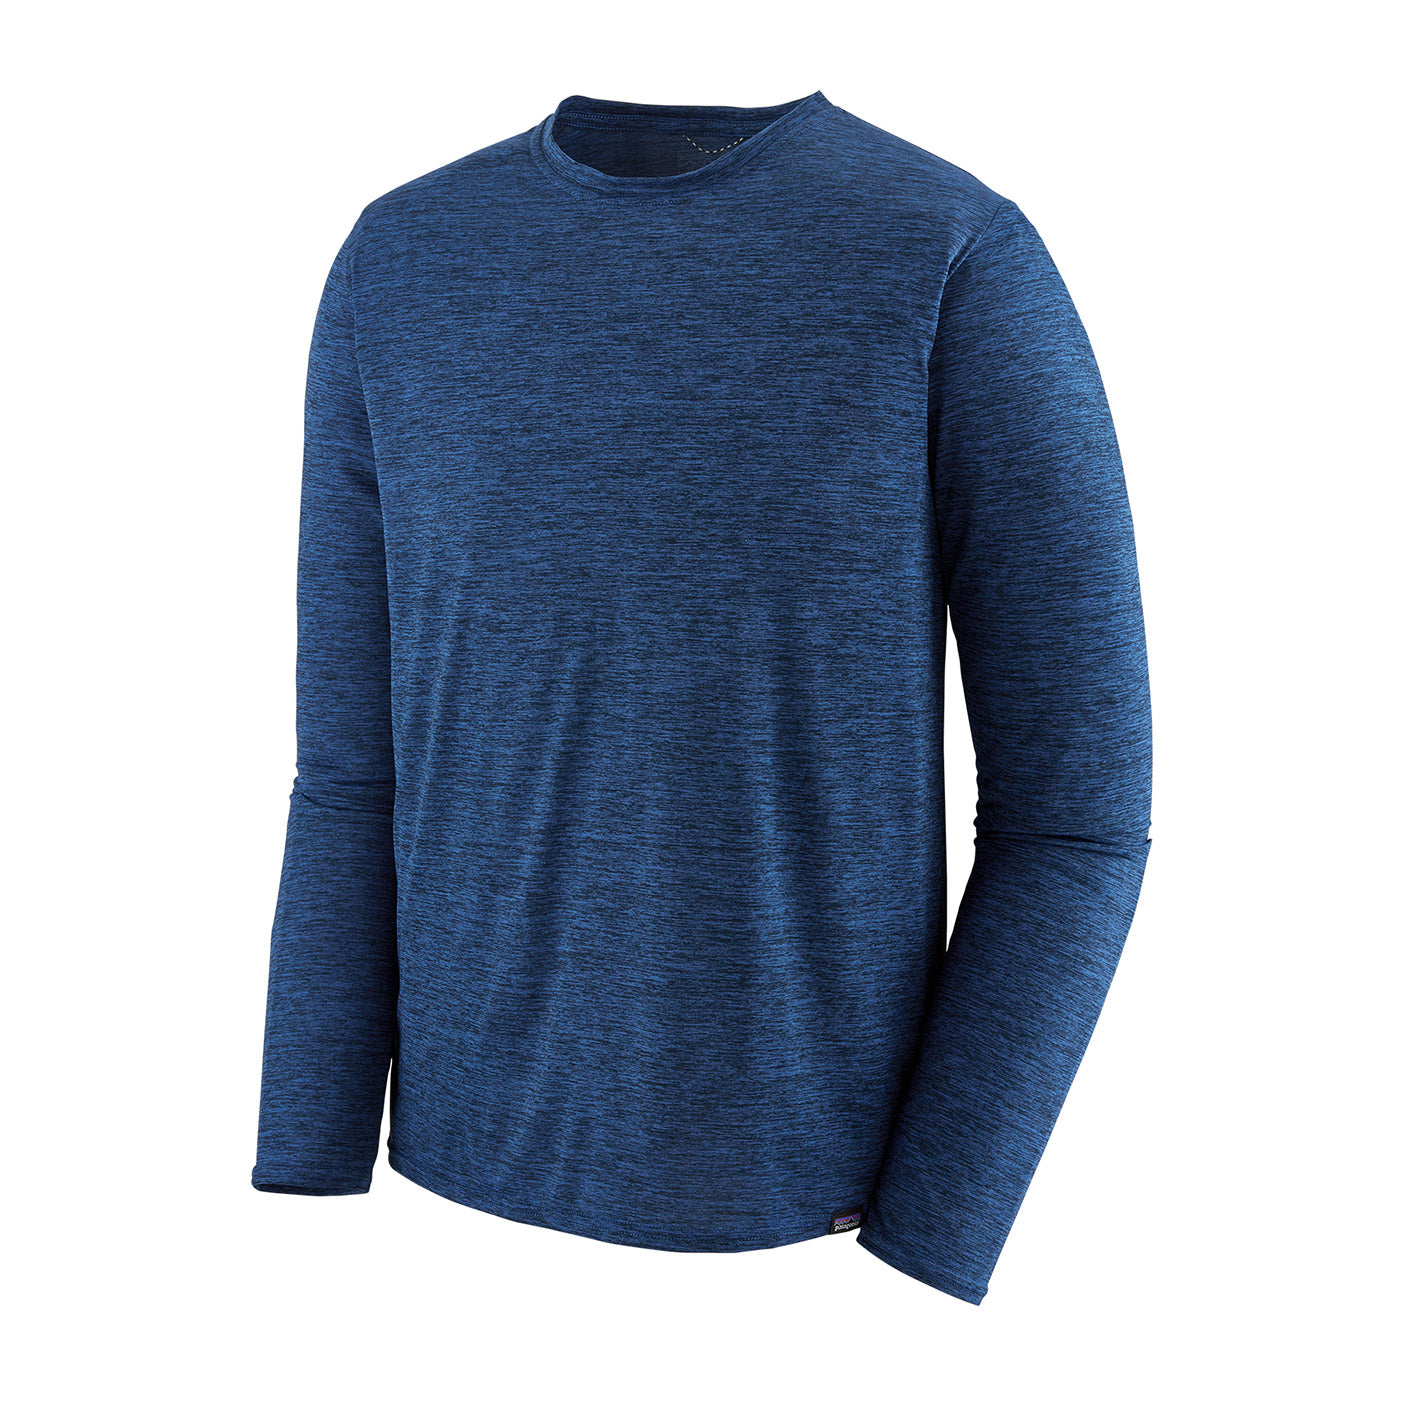 patagonia mens long sleeve capilene cool daily shirt in viking blue navy blue x dye front view